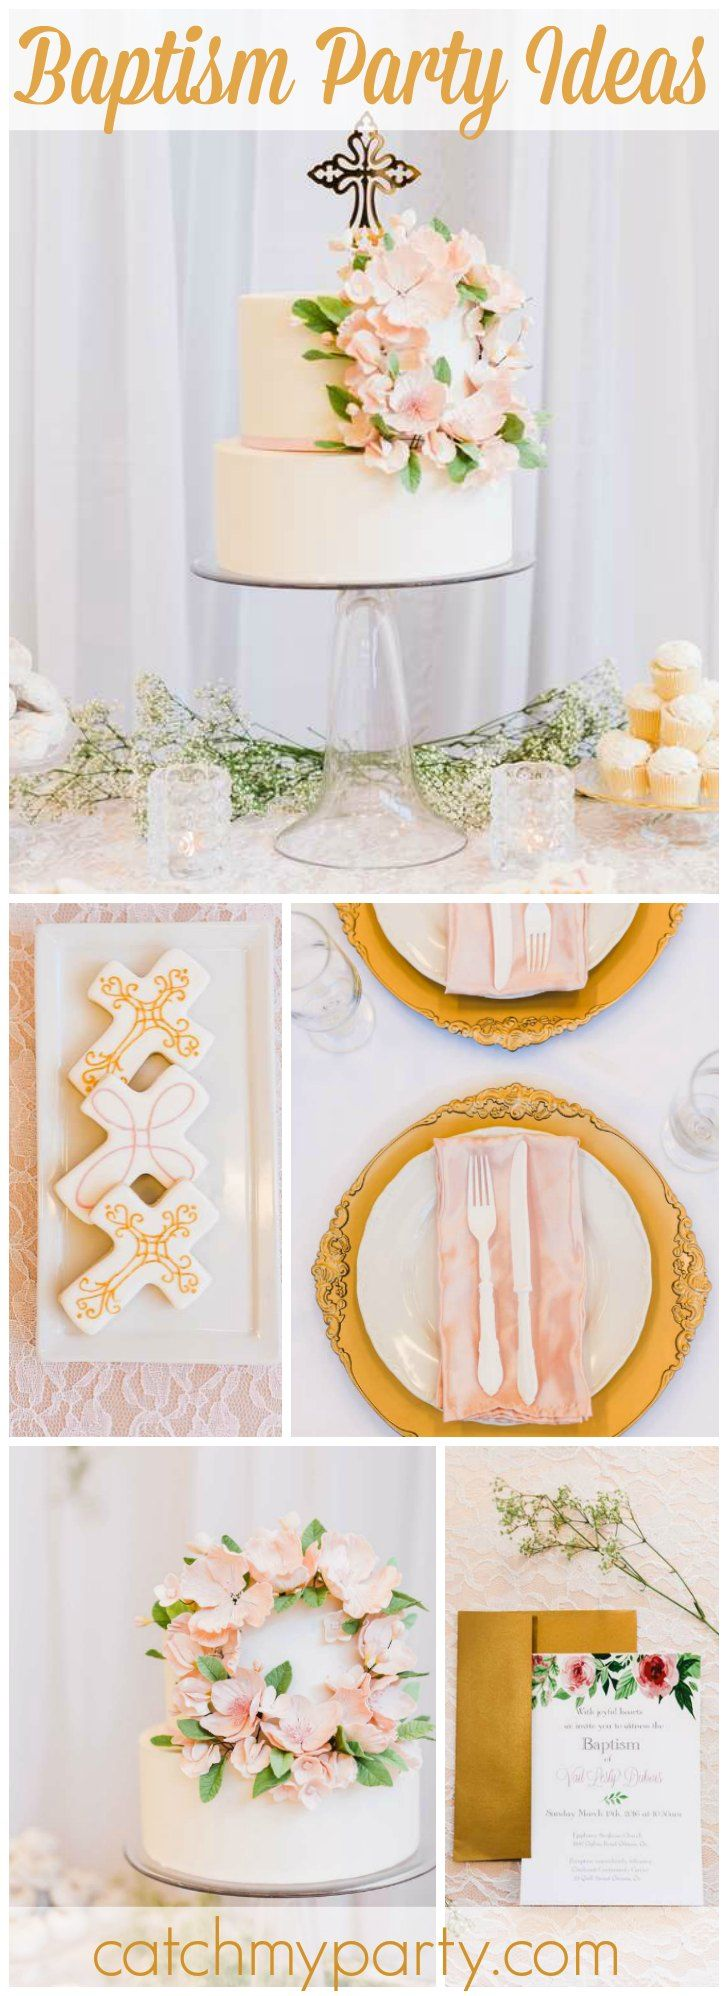 This baptism has a soft, delicate palette with gold and greenery accents! See more party ideas at CatchMyParty.com!